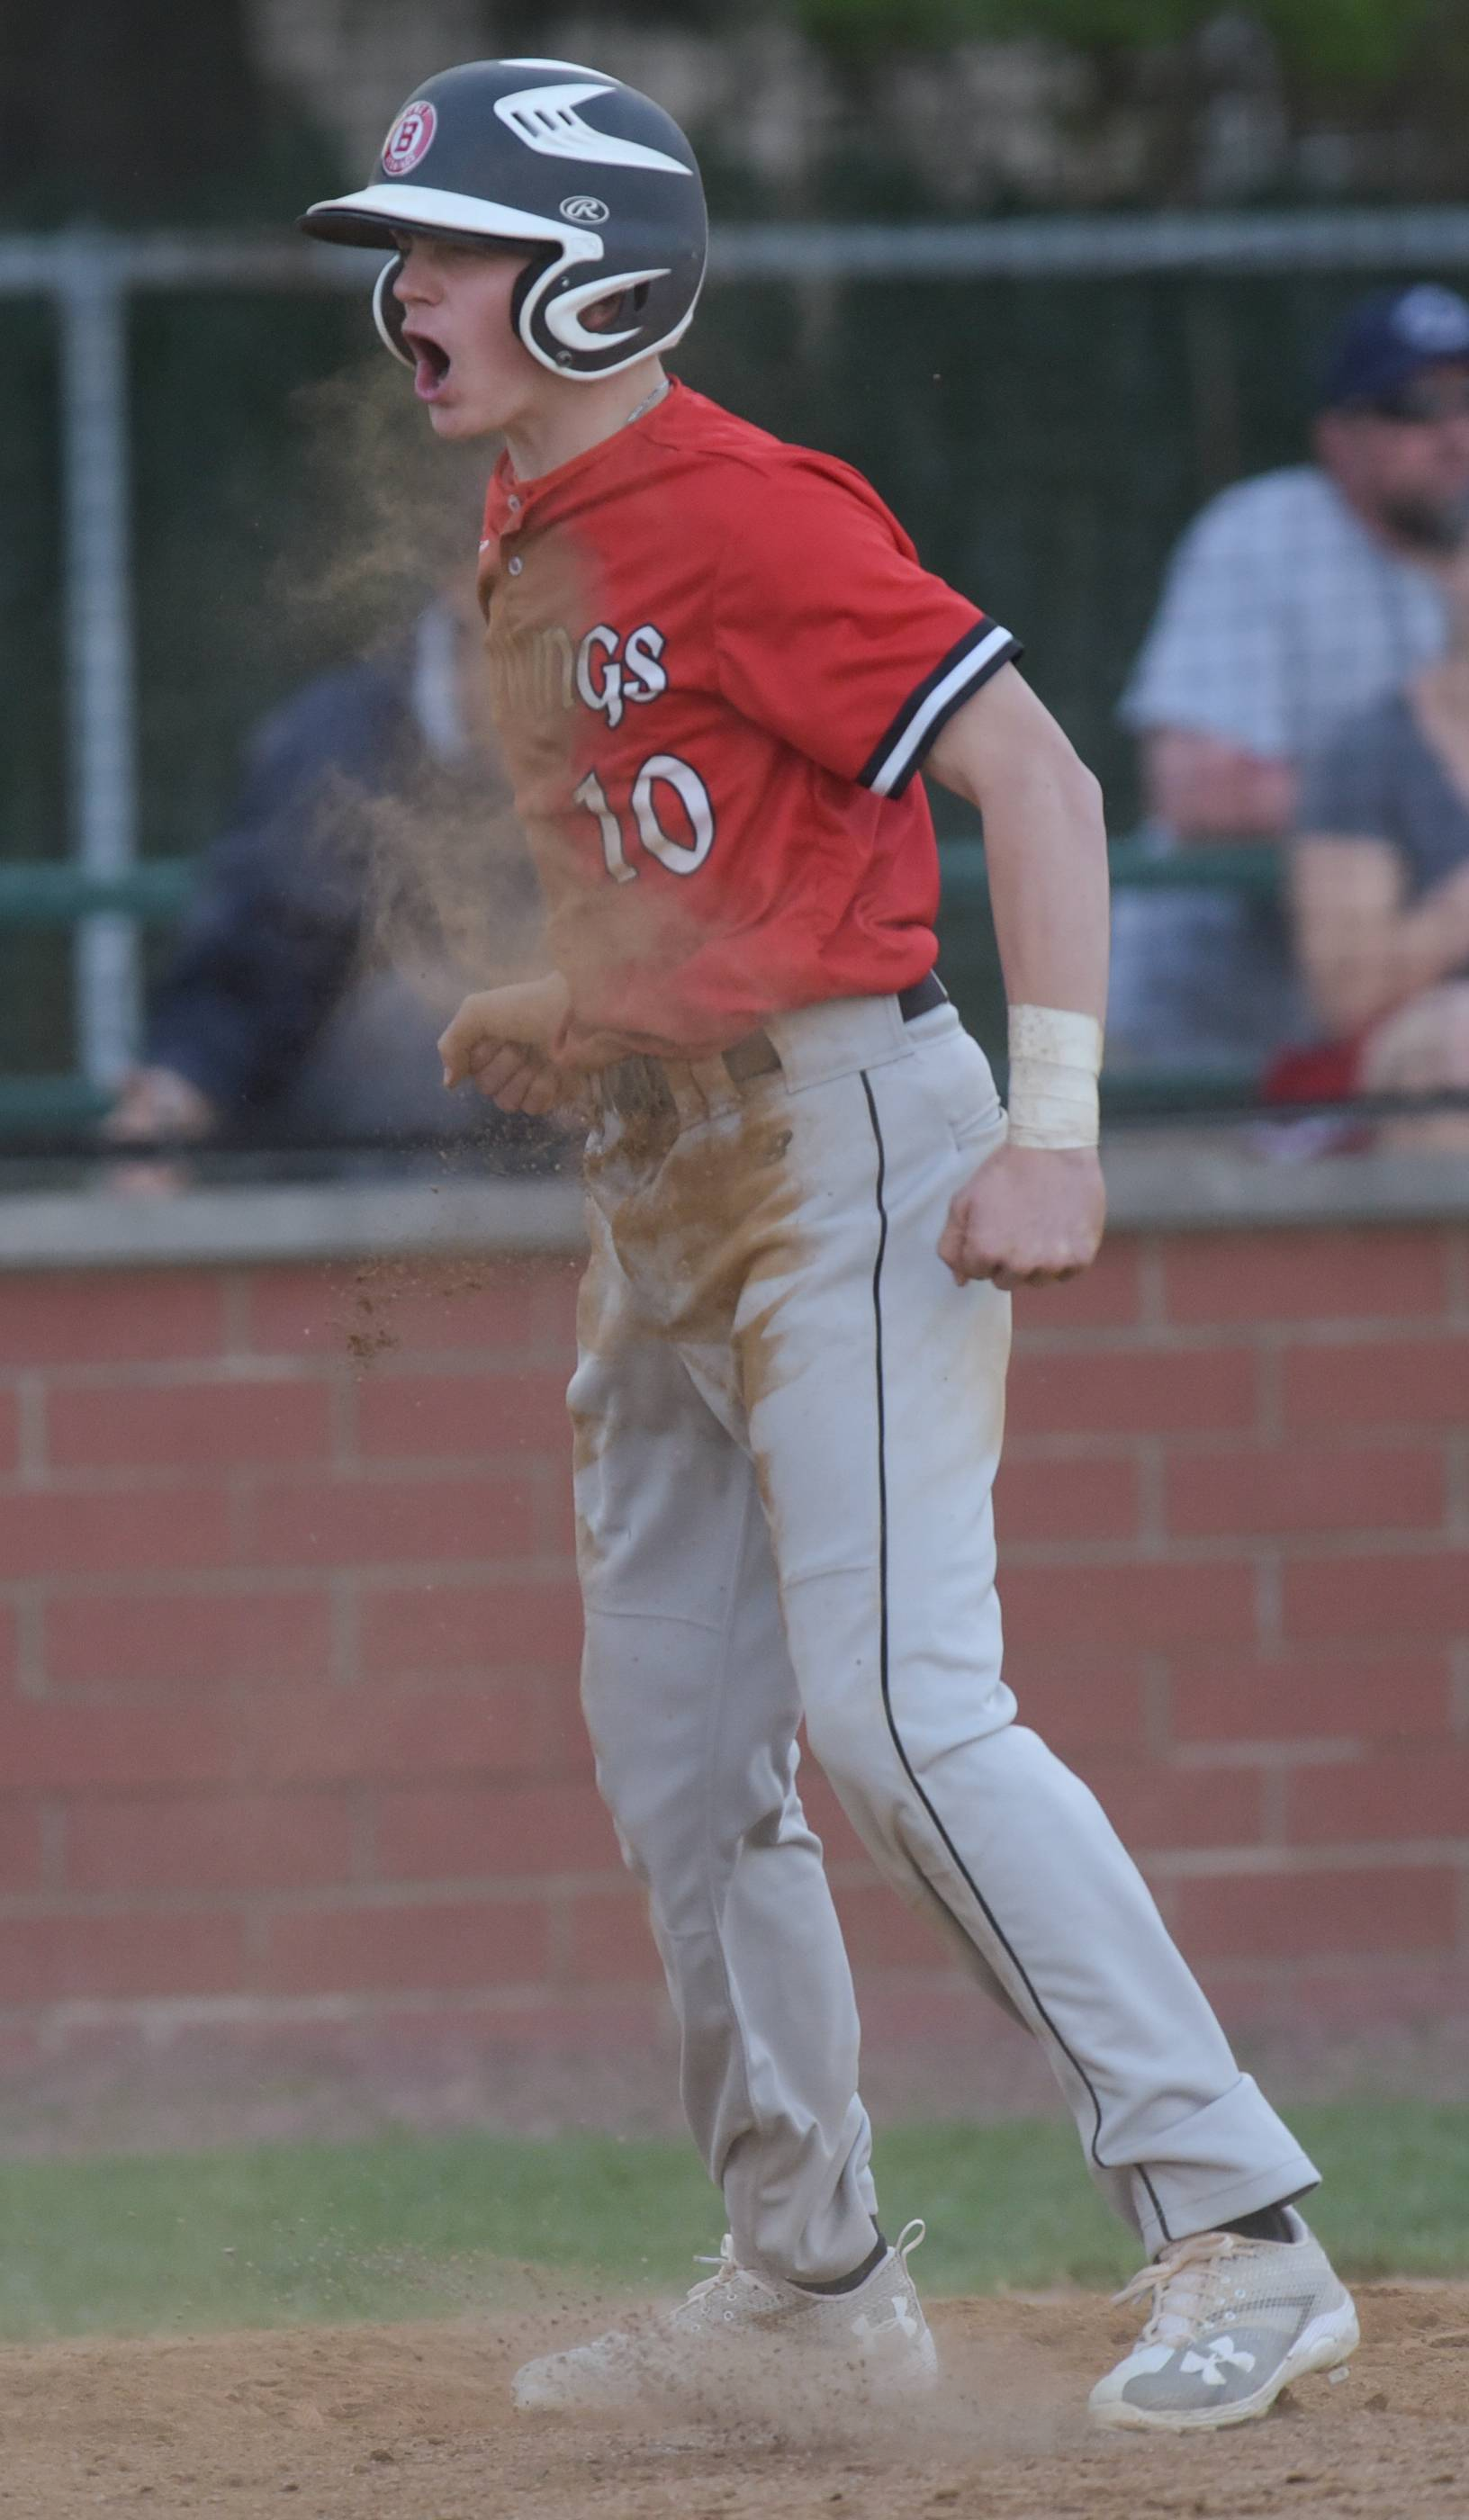 Benet Academy's Dolan Glasgow celebrates scoring the tying run in the 7th inning against Nazareth during varsity baseball in Lisle, April 18, 2017.